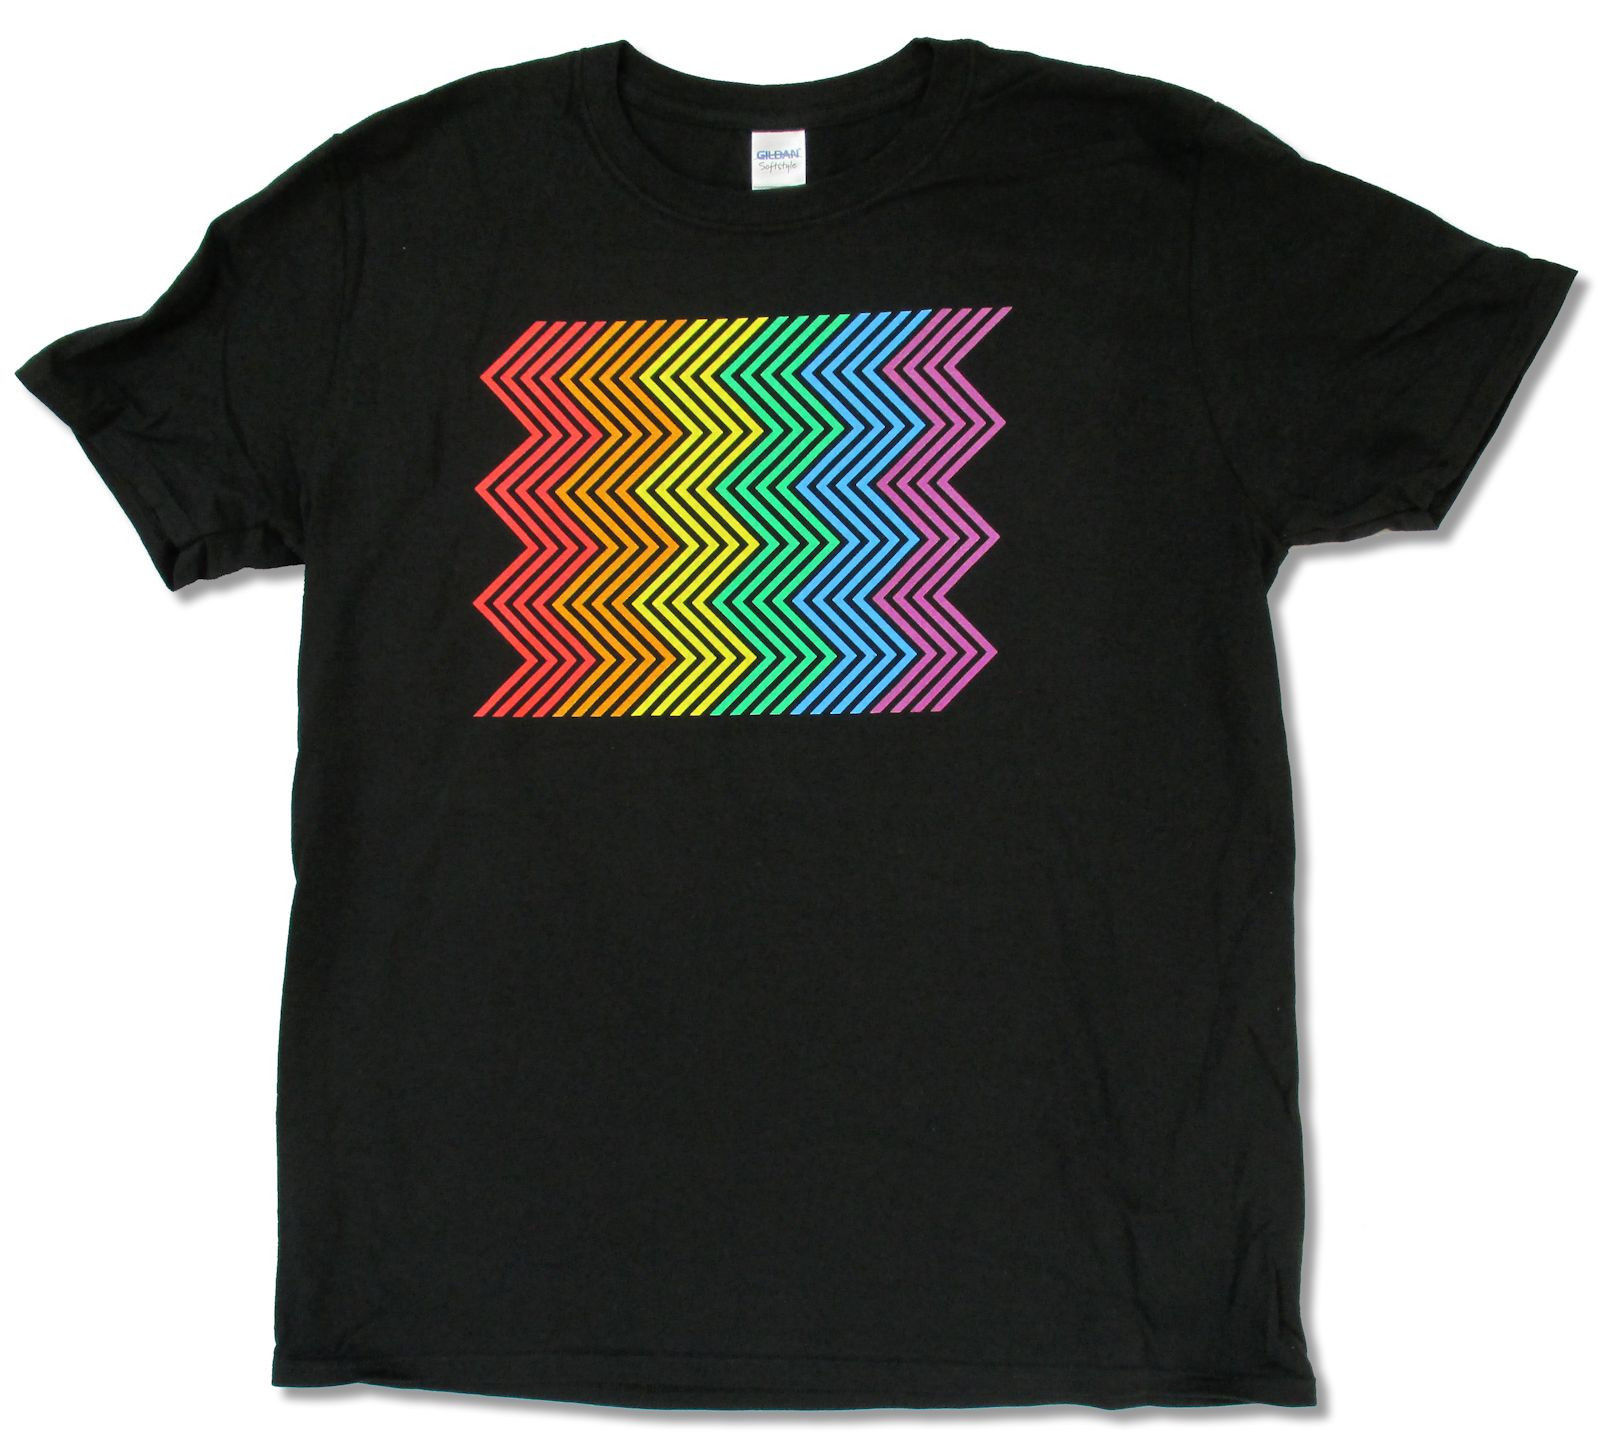 PET SHOP BOYS ELECTRIC RAINBOW TOUR 2014 BLACK T-SHIRT NEW OFFICIAL ADULT BAND O Neck T-Shirts Male Low Price Steampunk